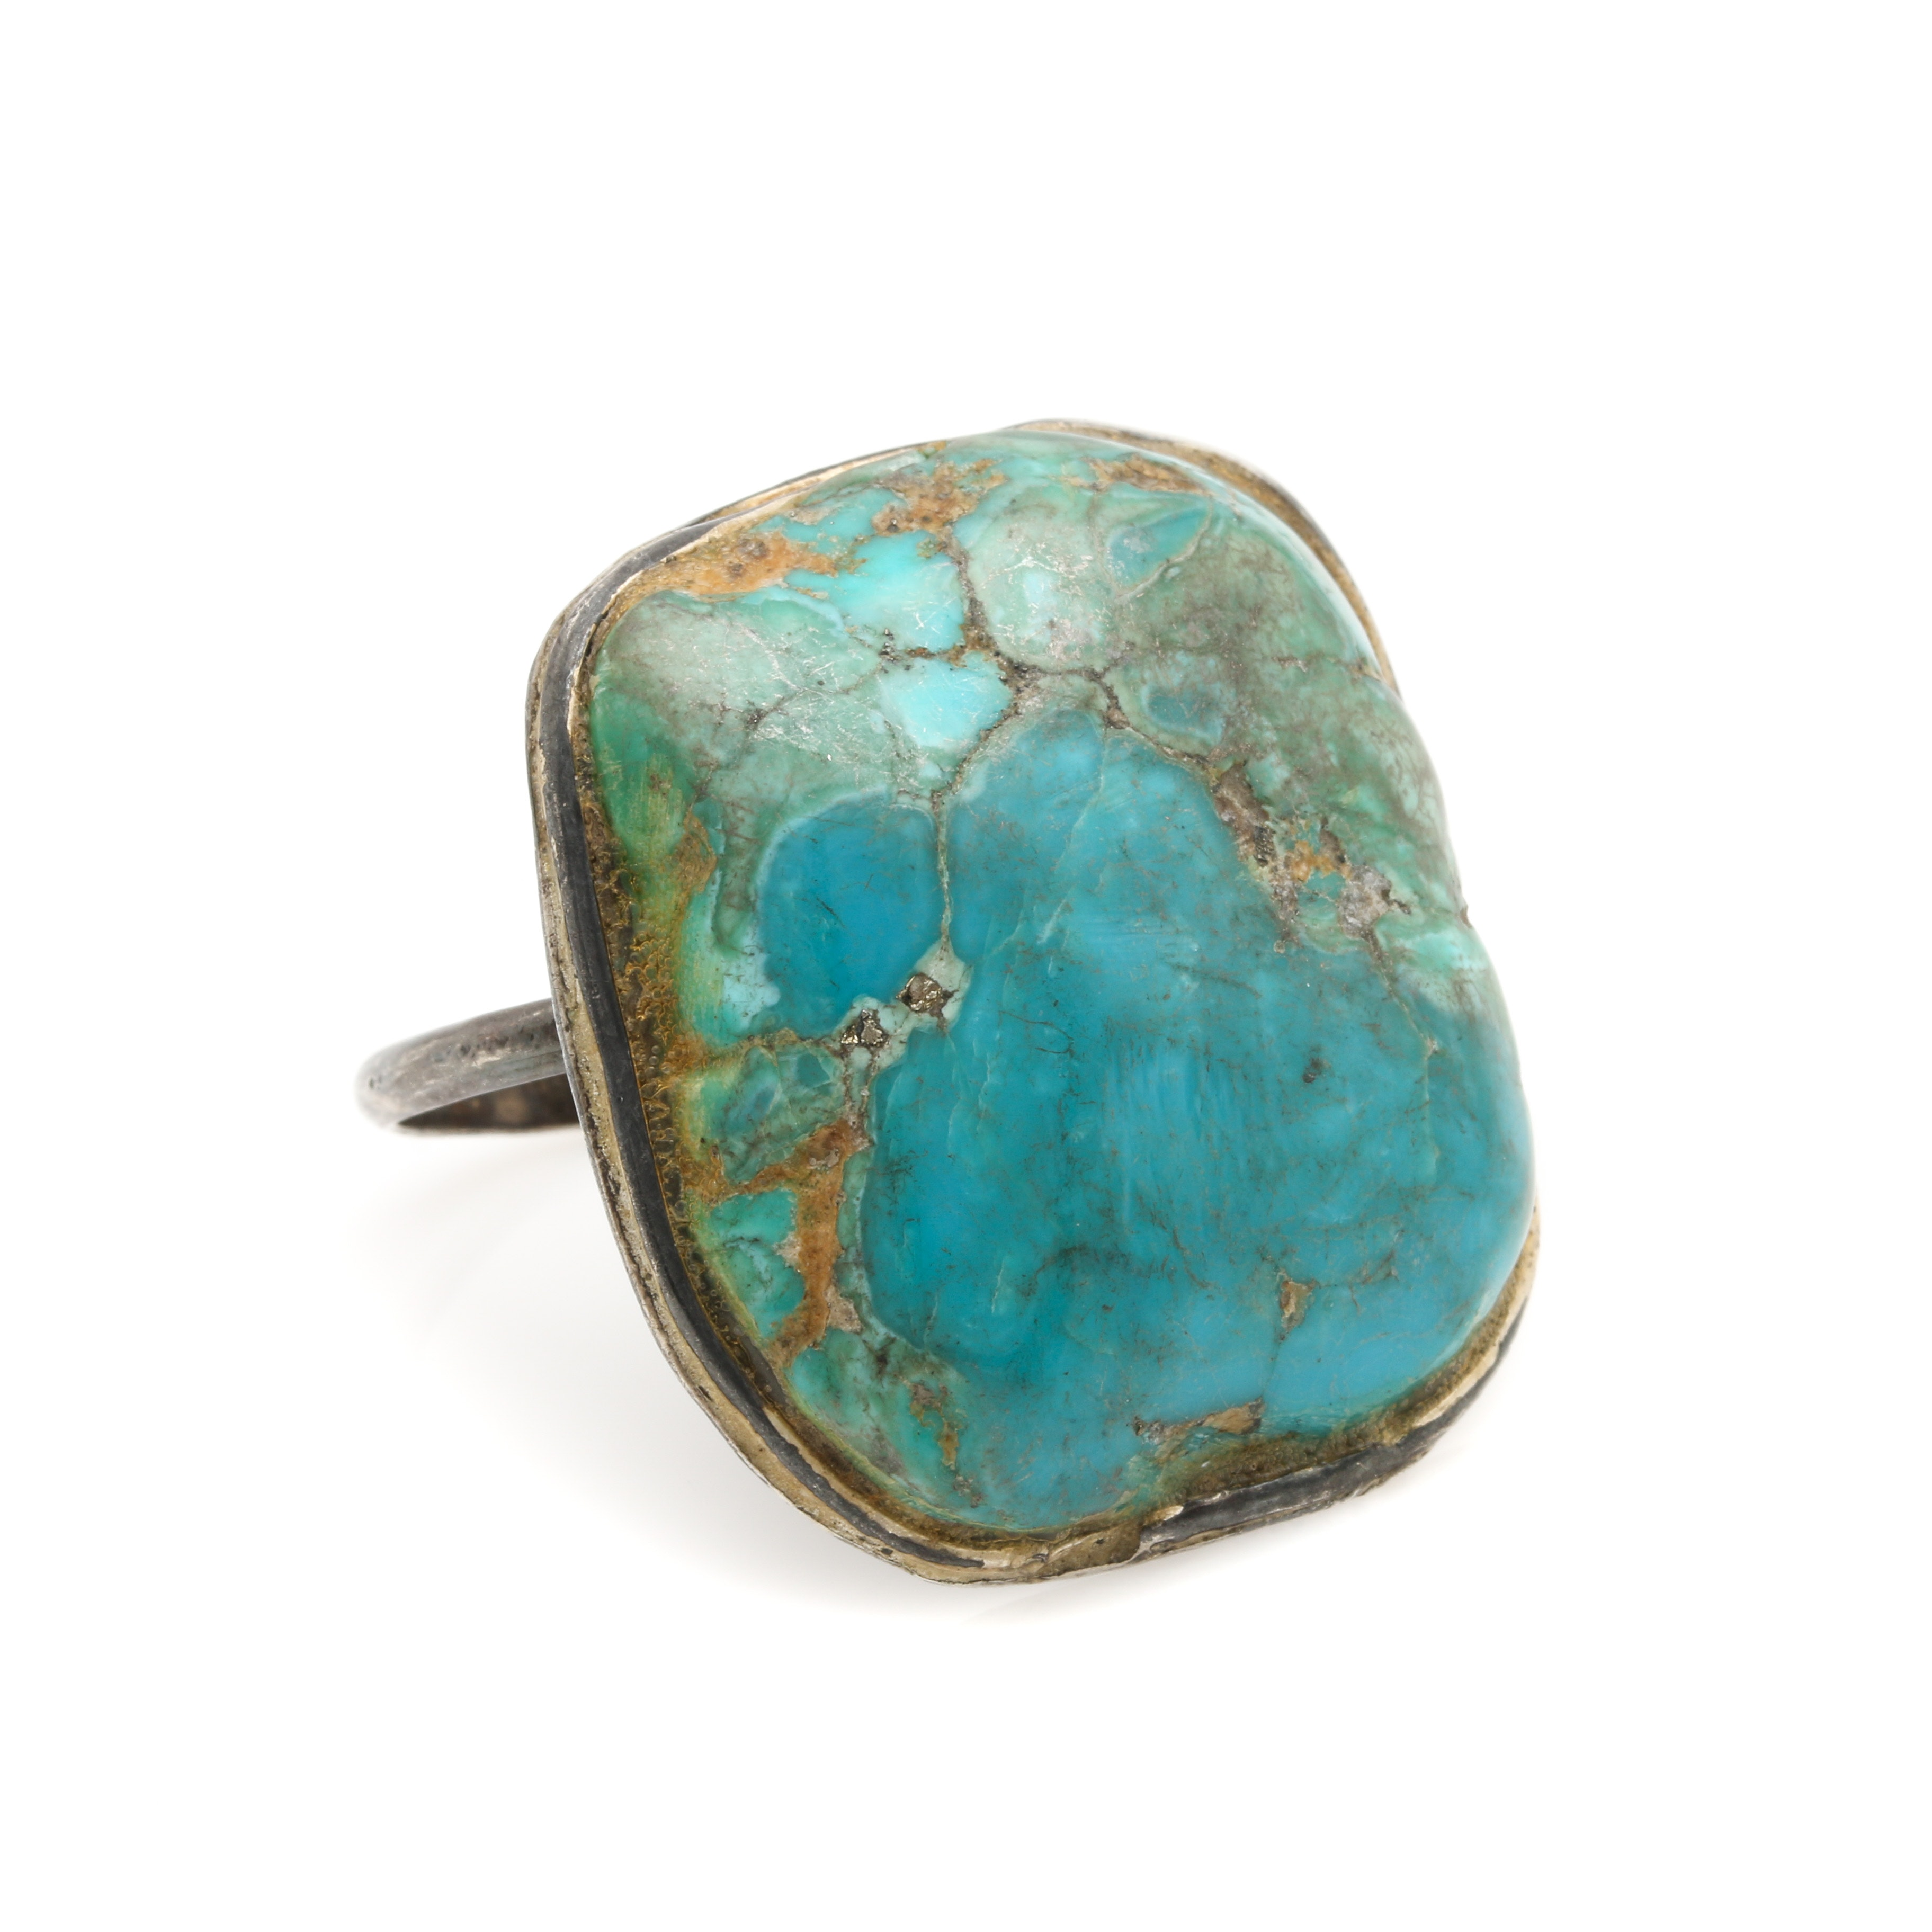 Vintage Handmade Sterling Silver Turquoise Ring